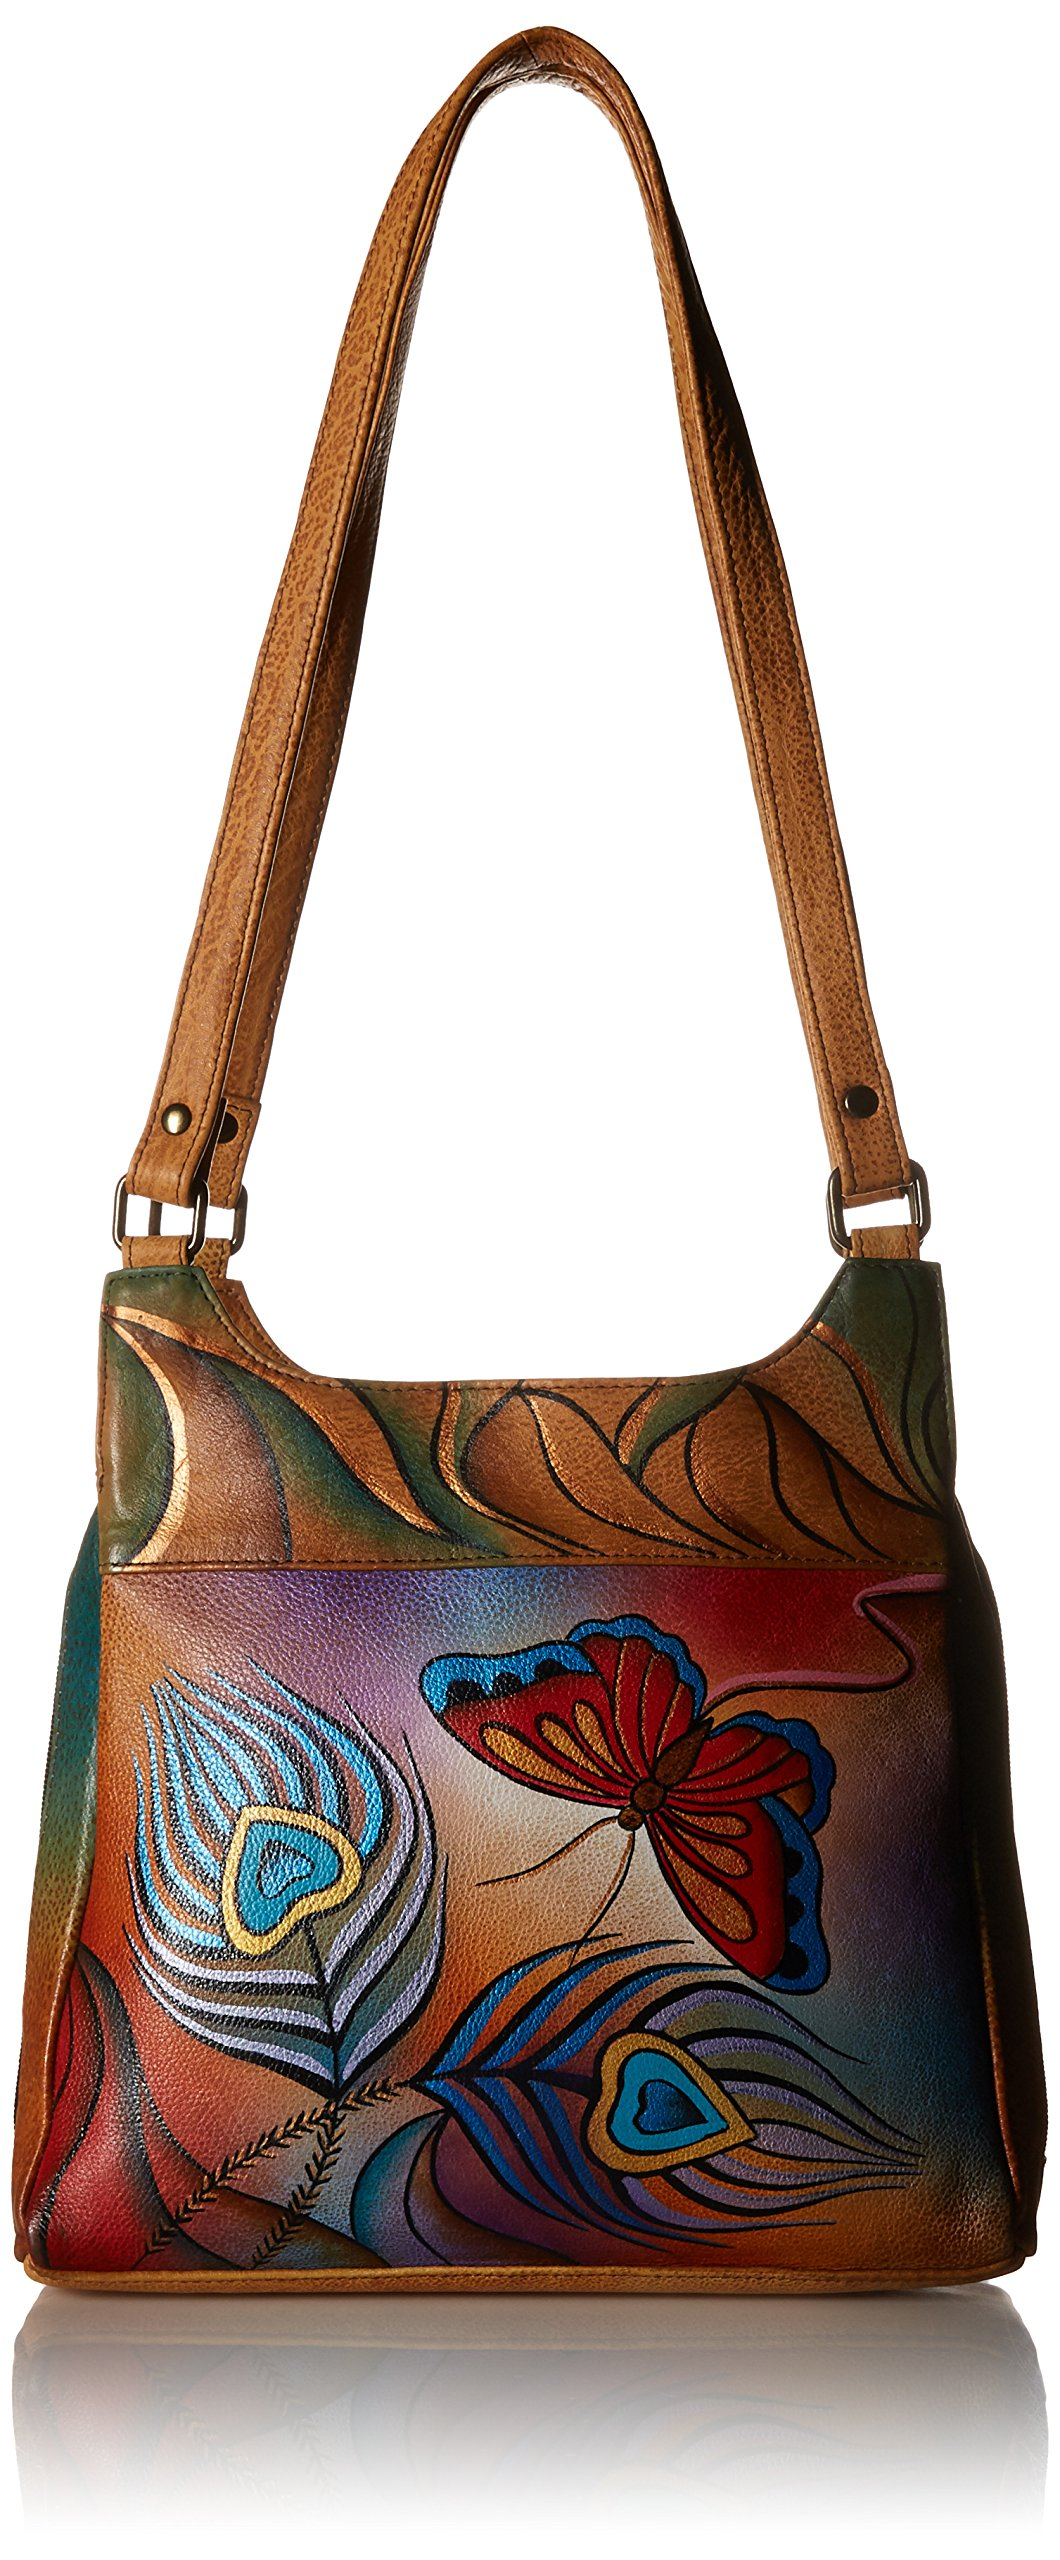 Anuschka Medium Hobo PBF, Peacock Butterfly, One Size